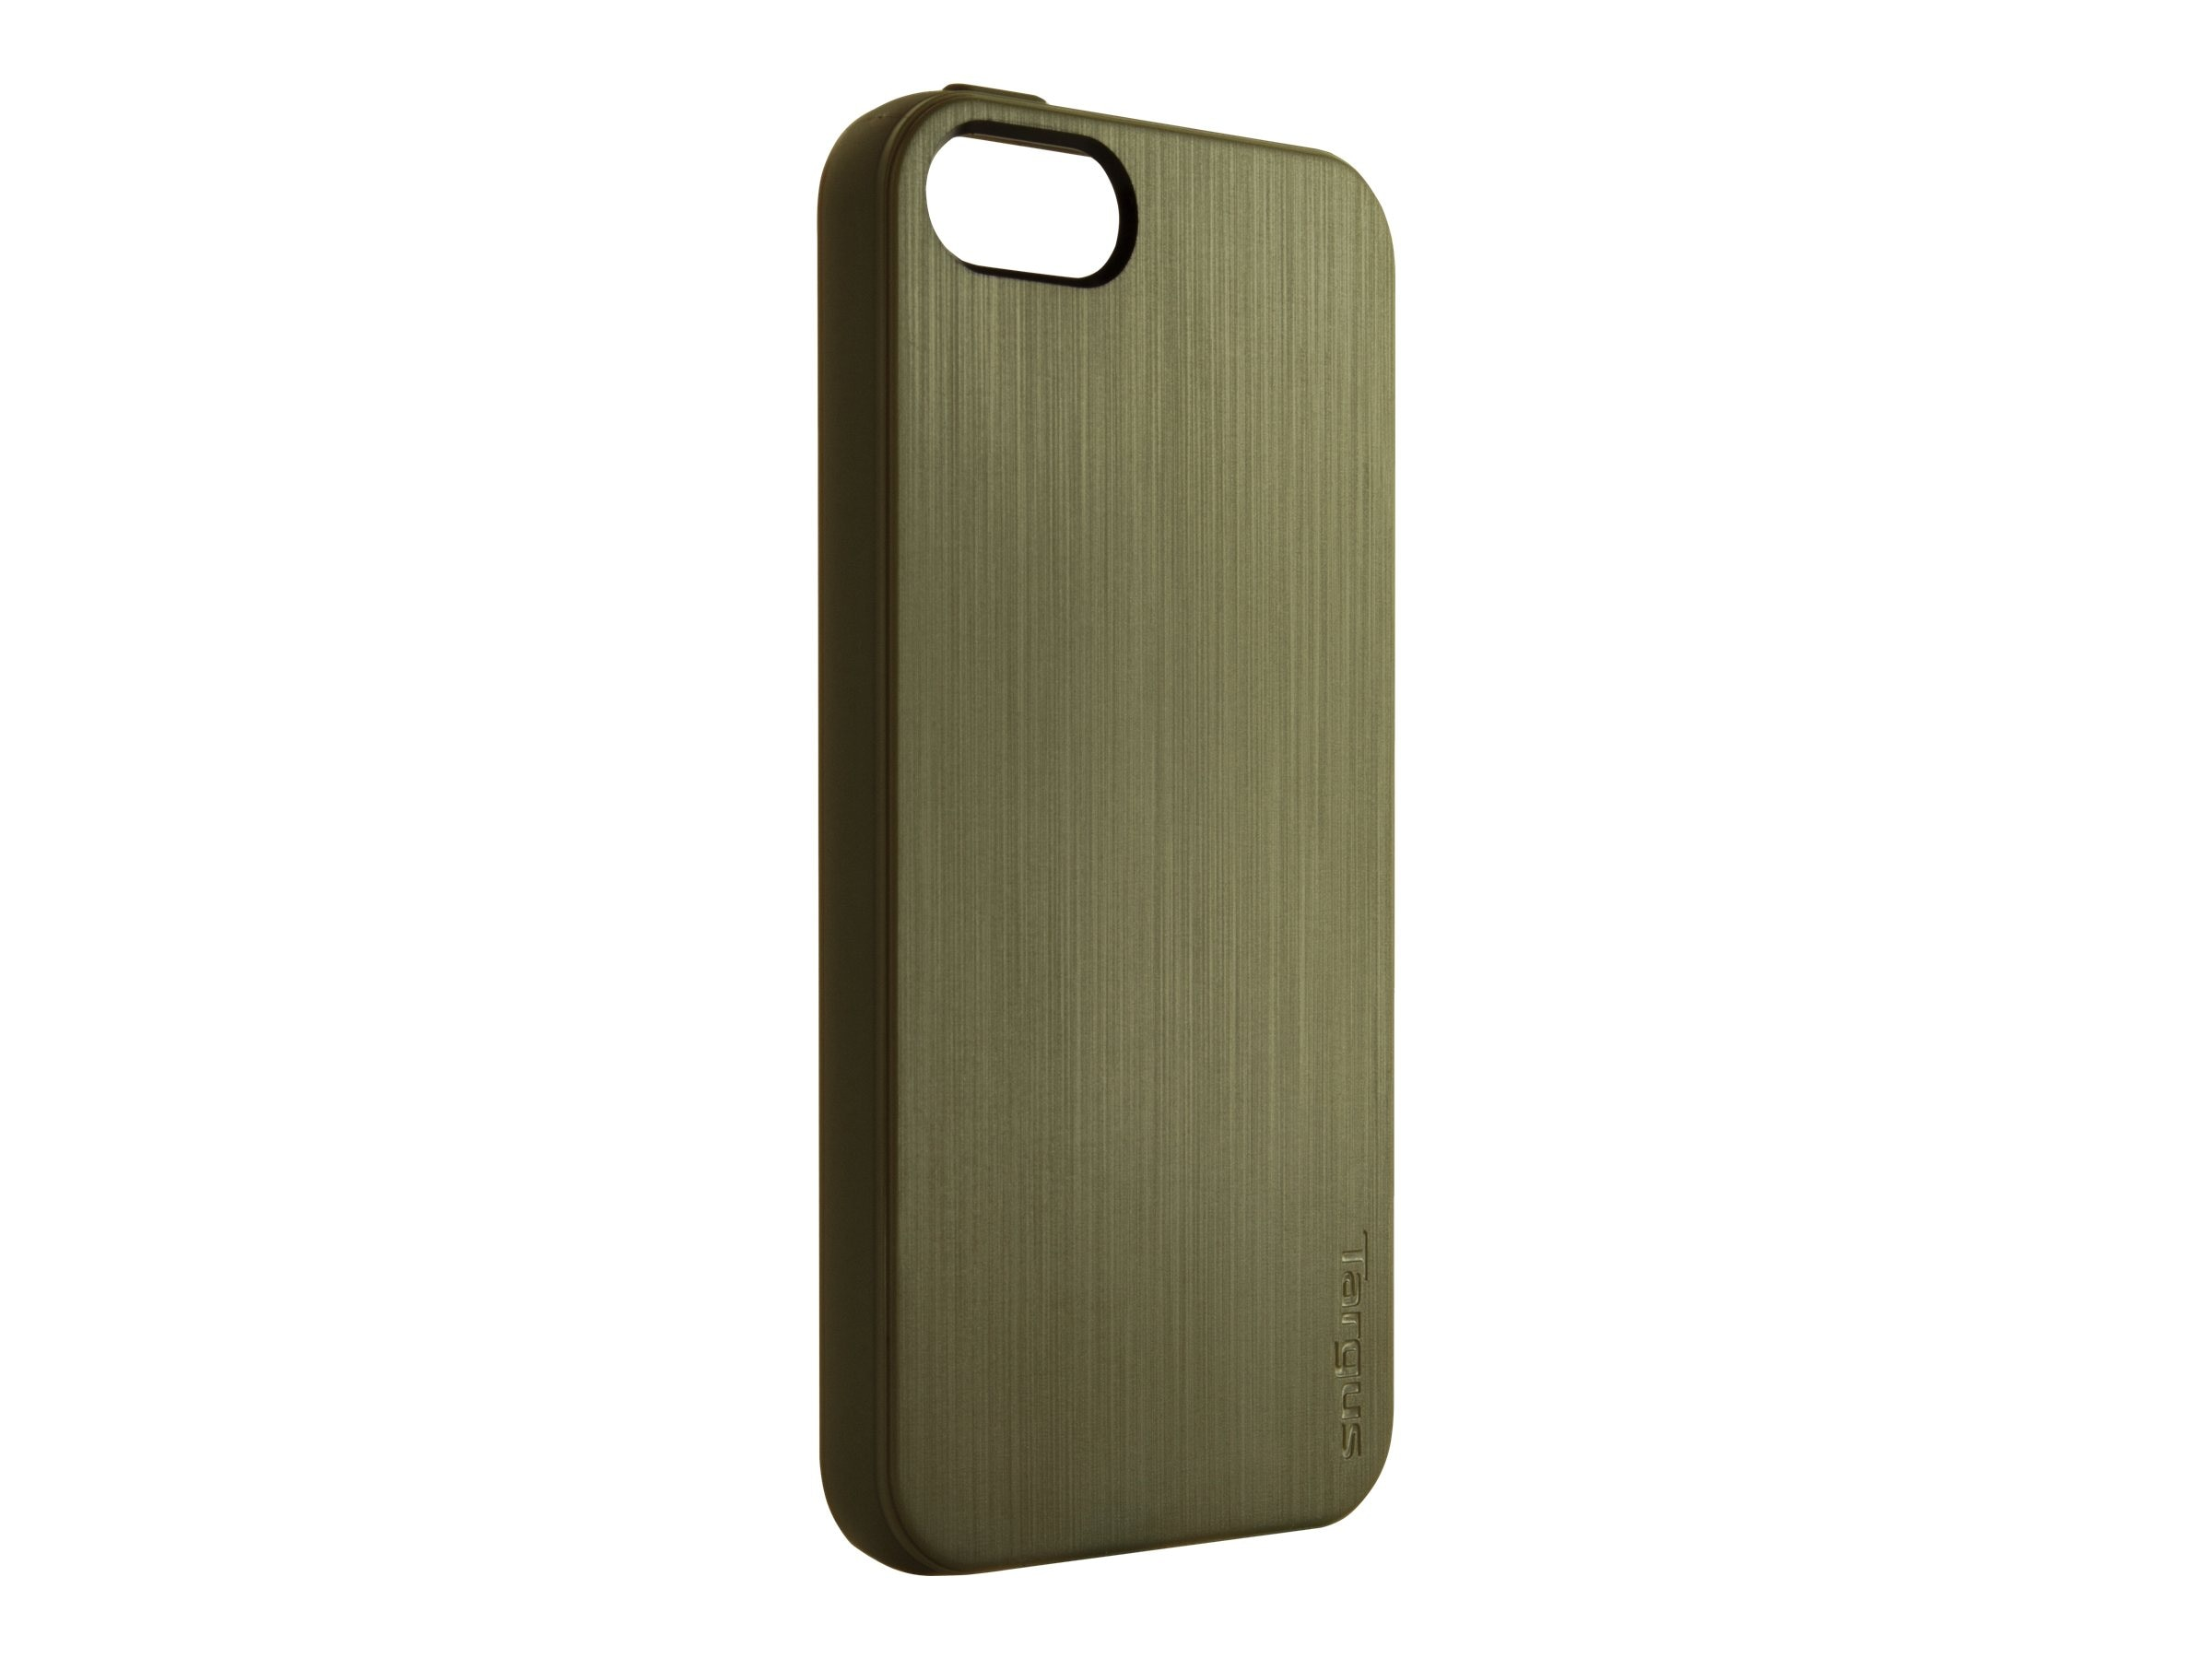 Targus Slim-Fit Back Cover for iPhone 5, Green, THD03105US, 14765709, Carrying Cases - Phones/PDAs